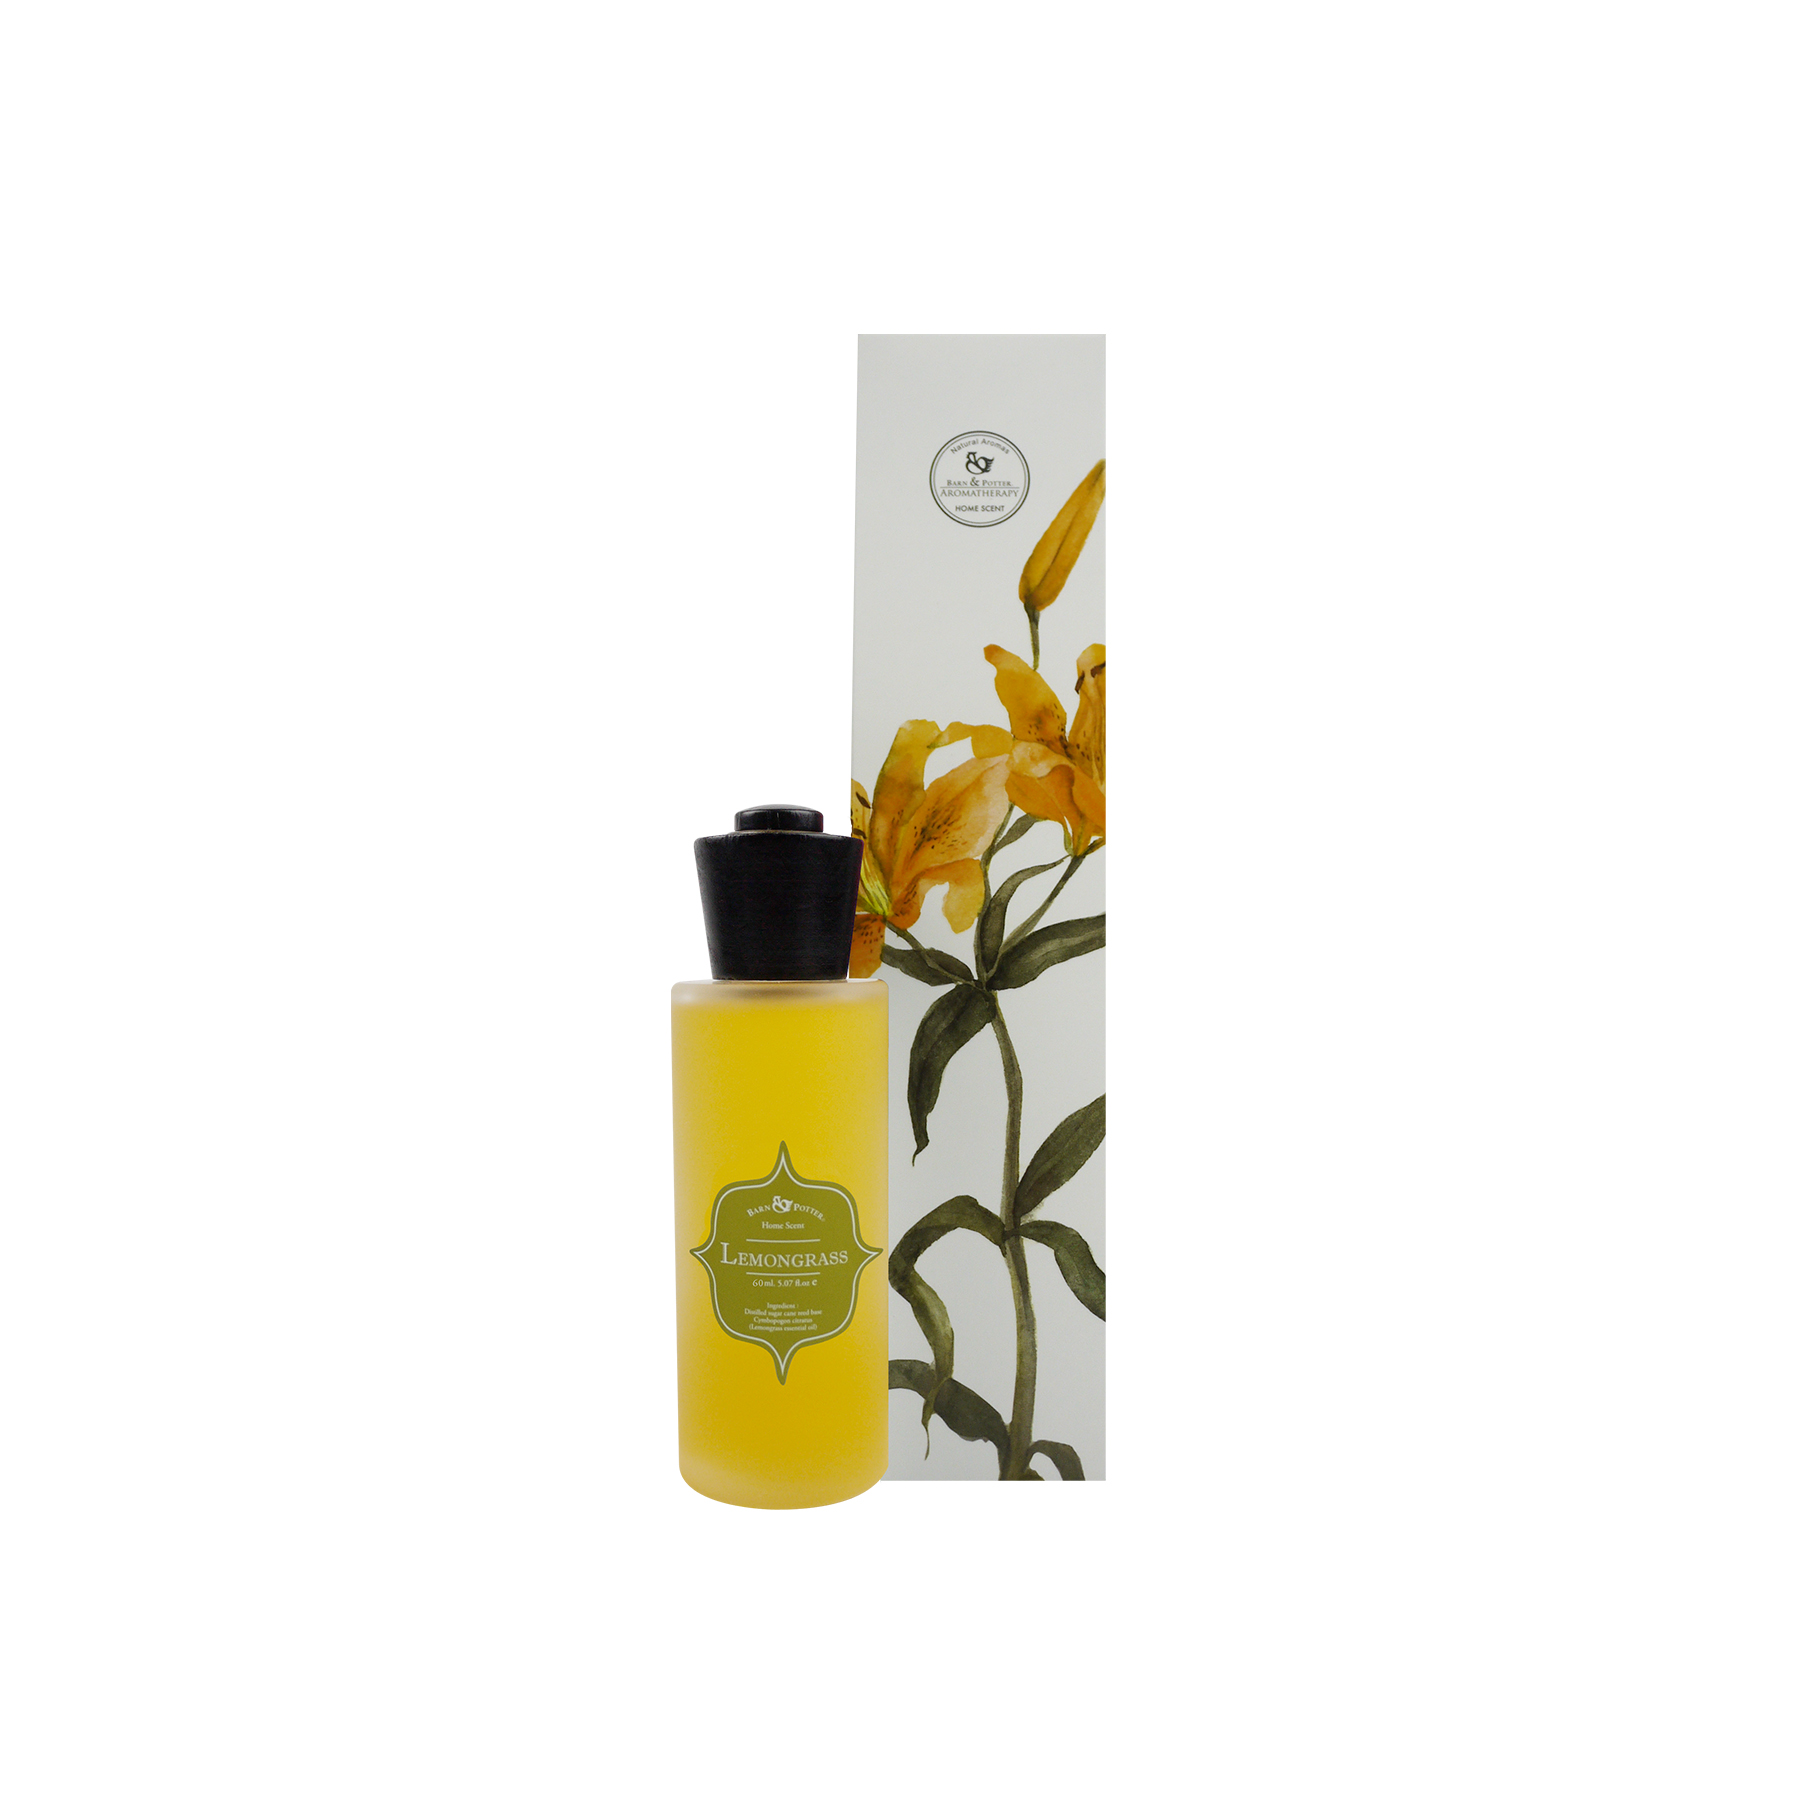 mts-home-scent-lemongrass-150ml